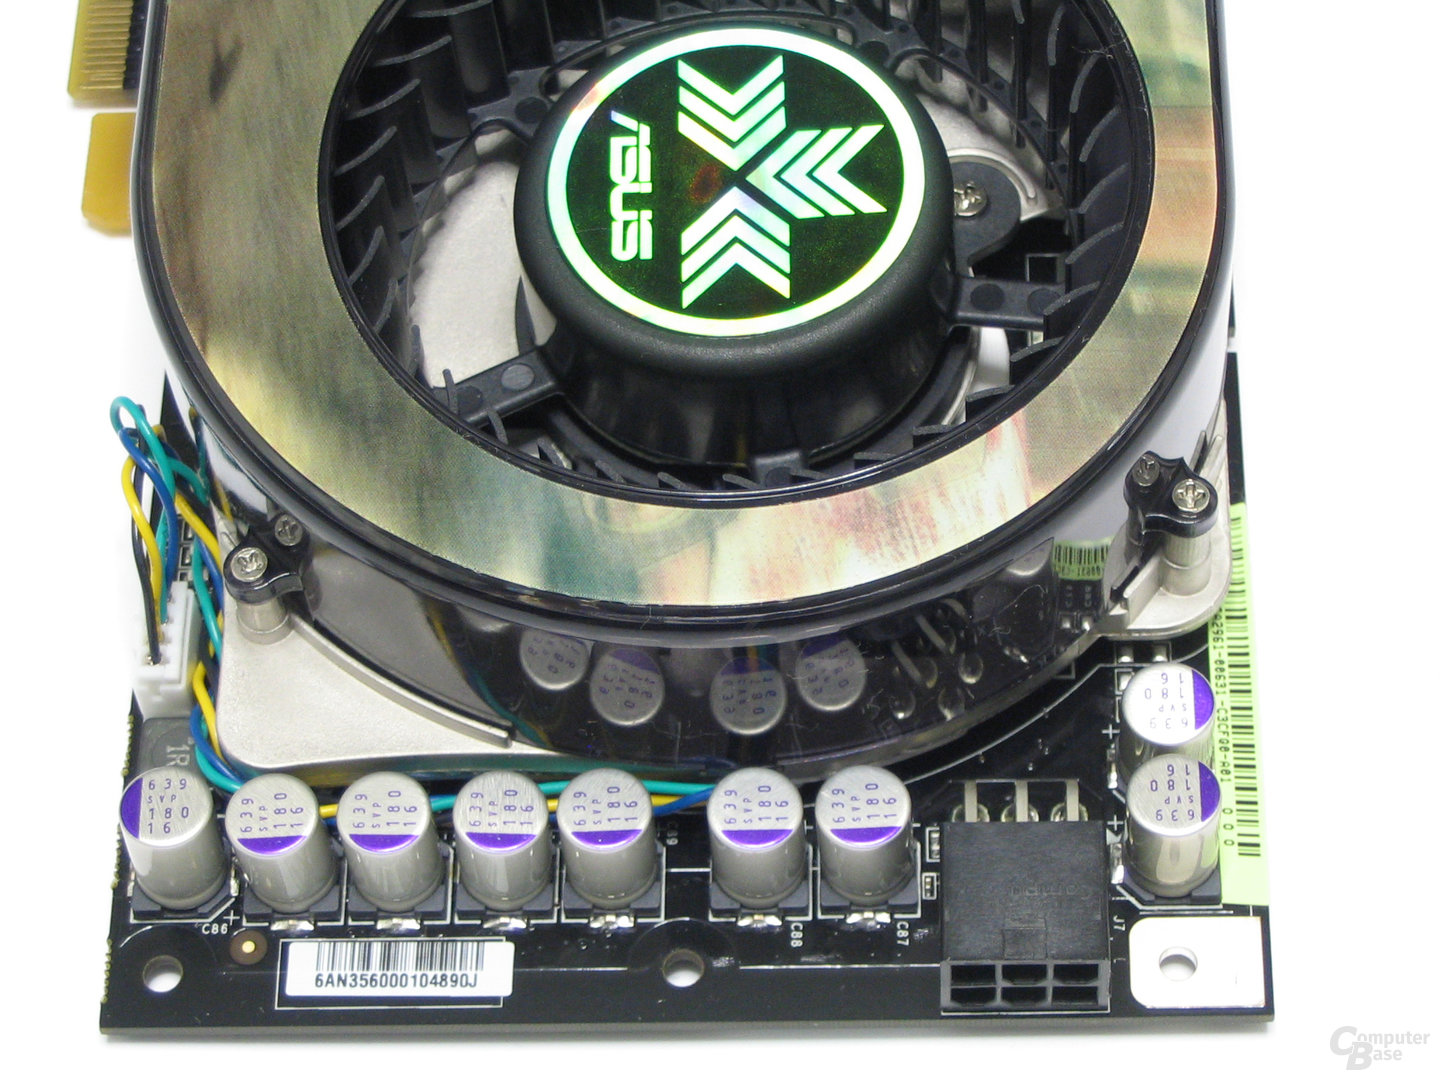 Asus 8800 GTS Spannungswandler